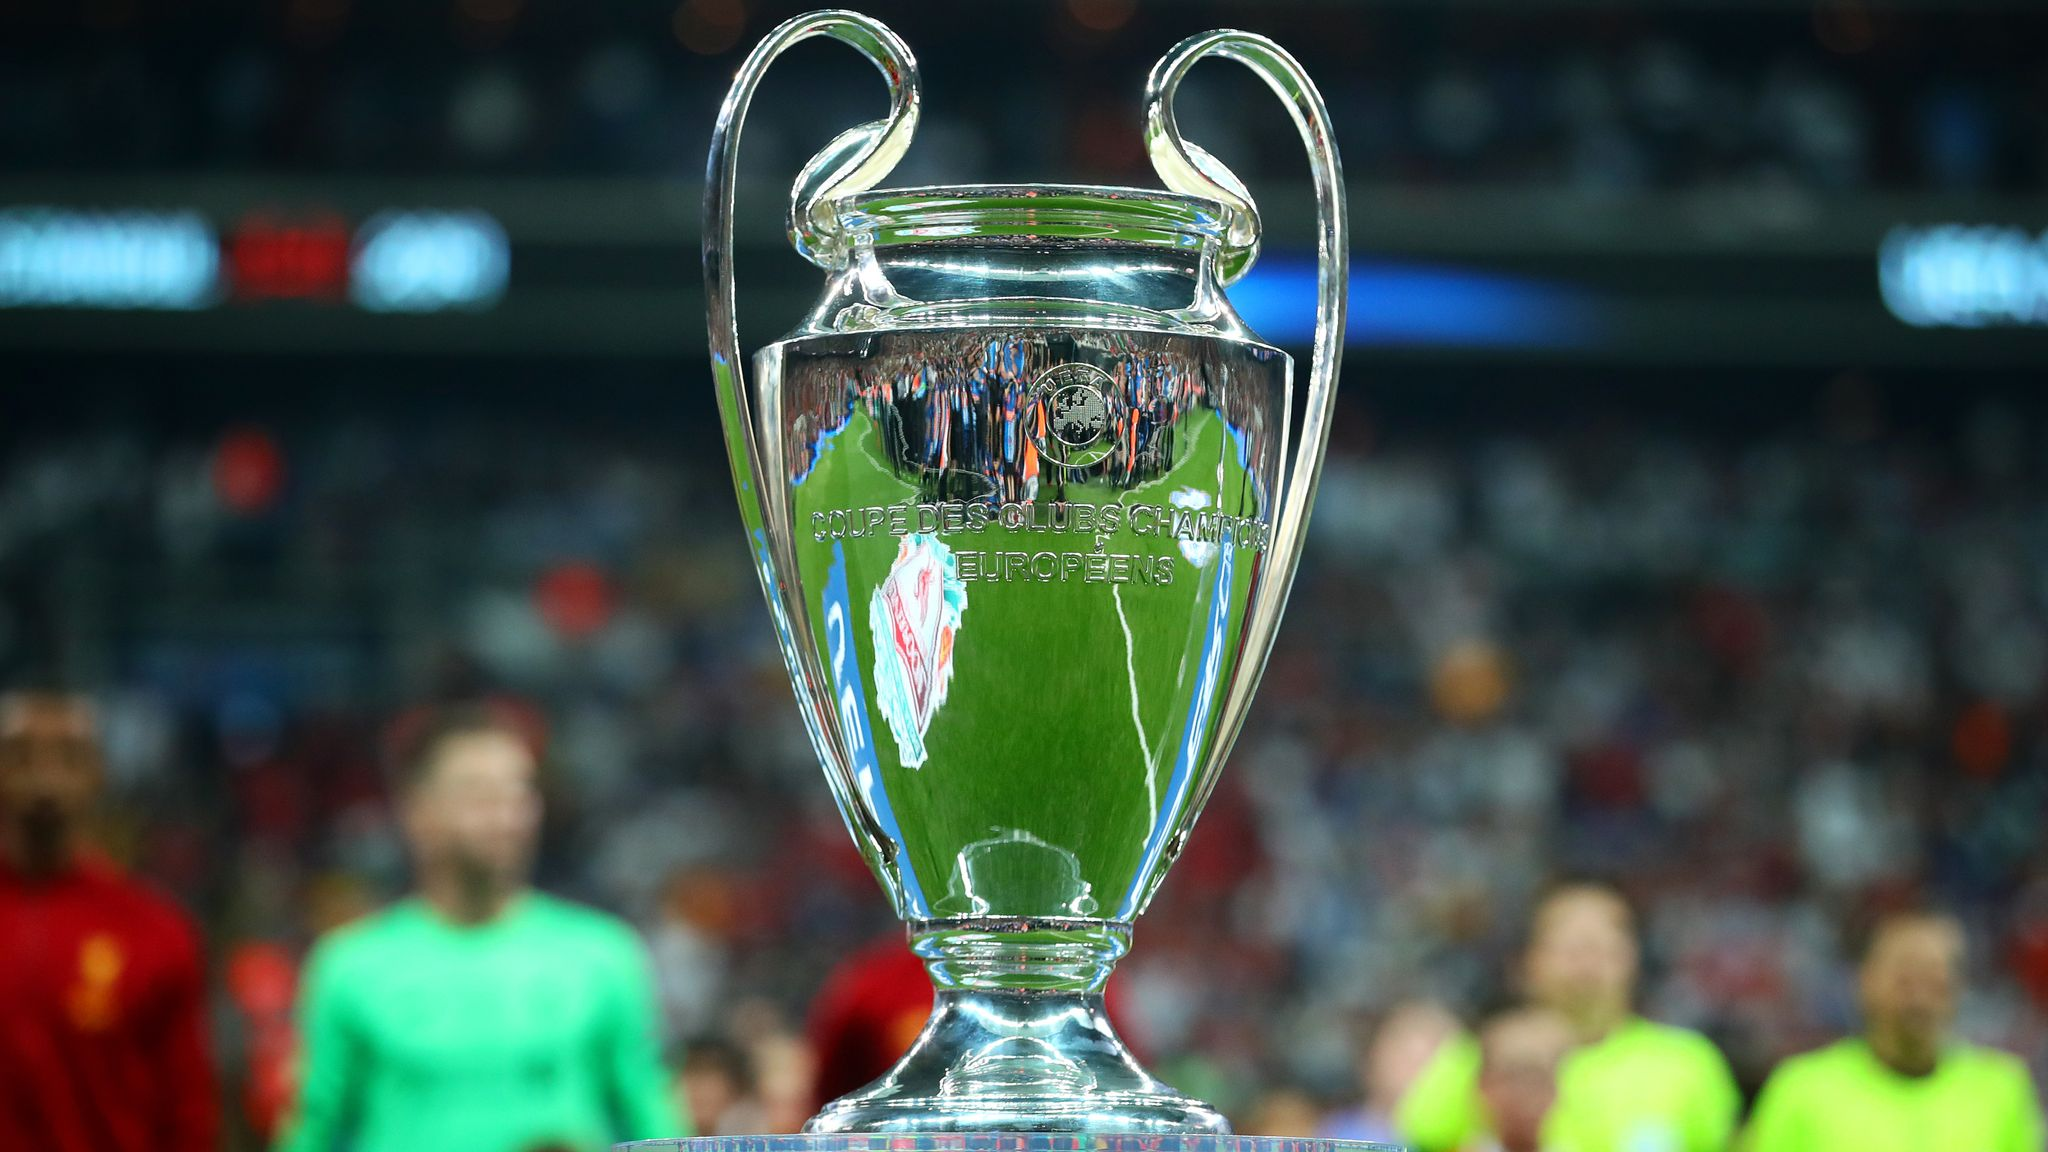 Champions League draw on Sky Sports News - live stream